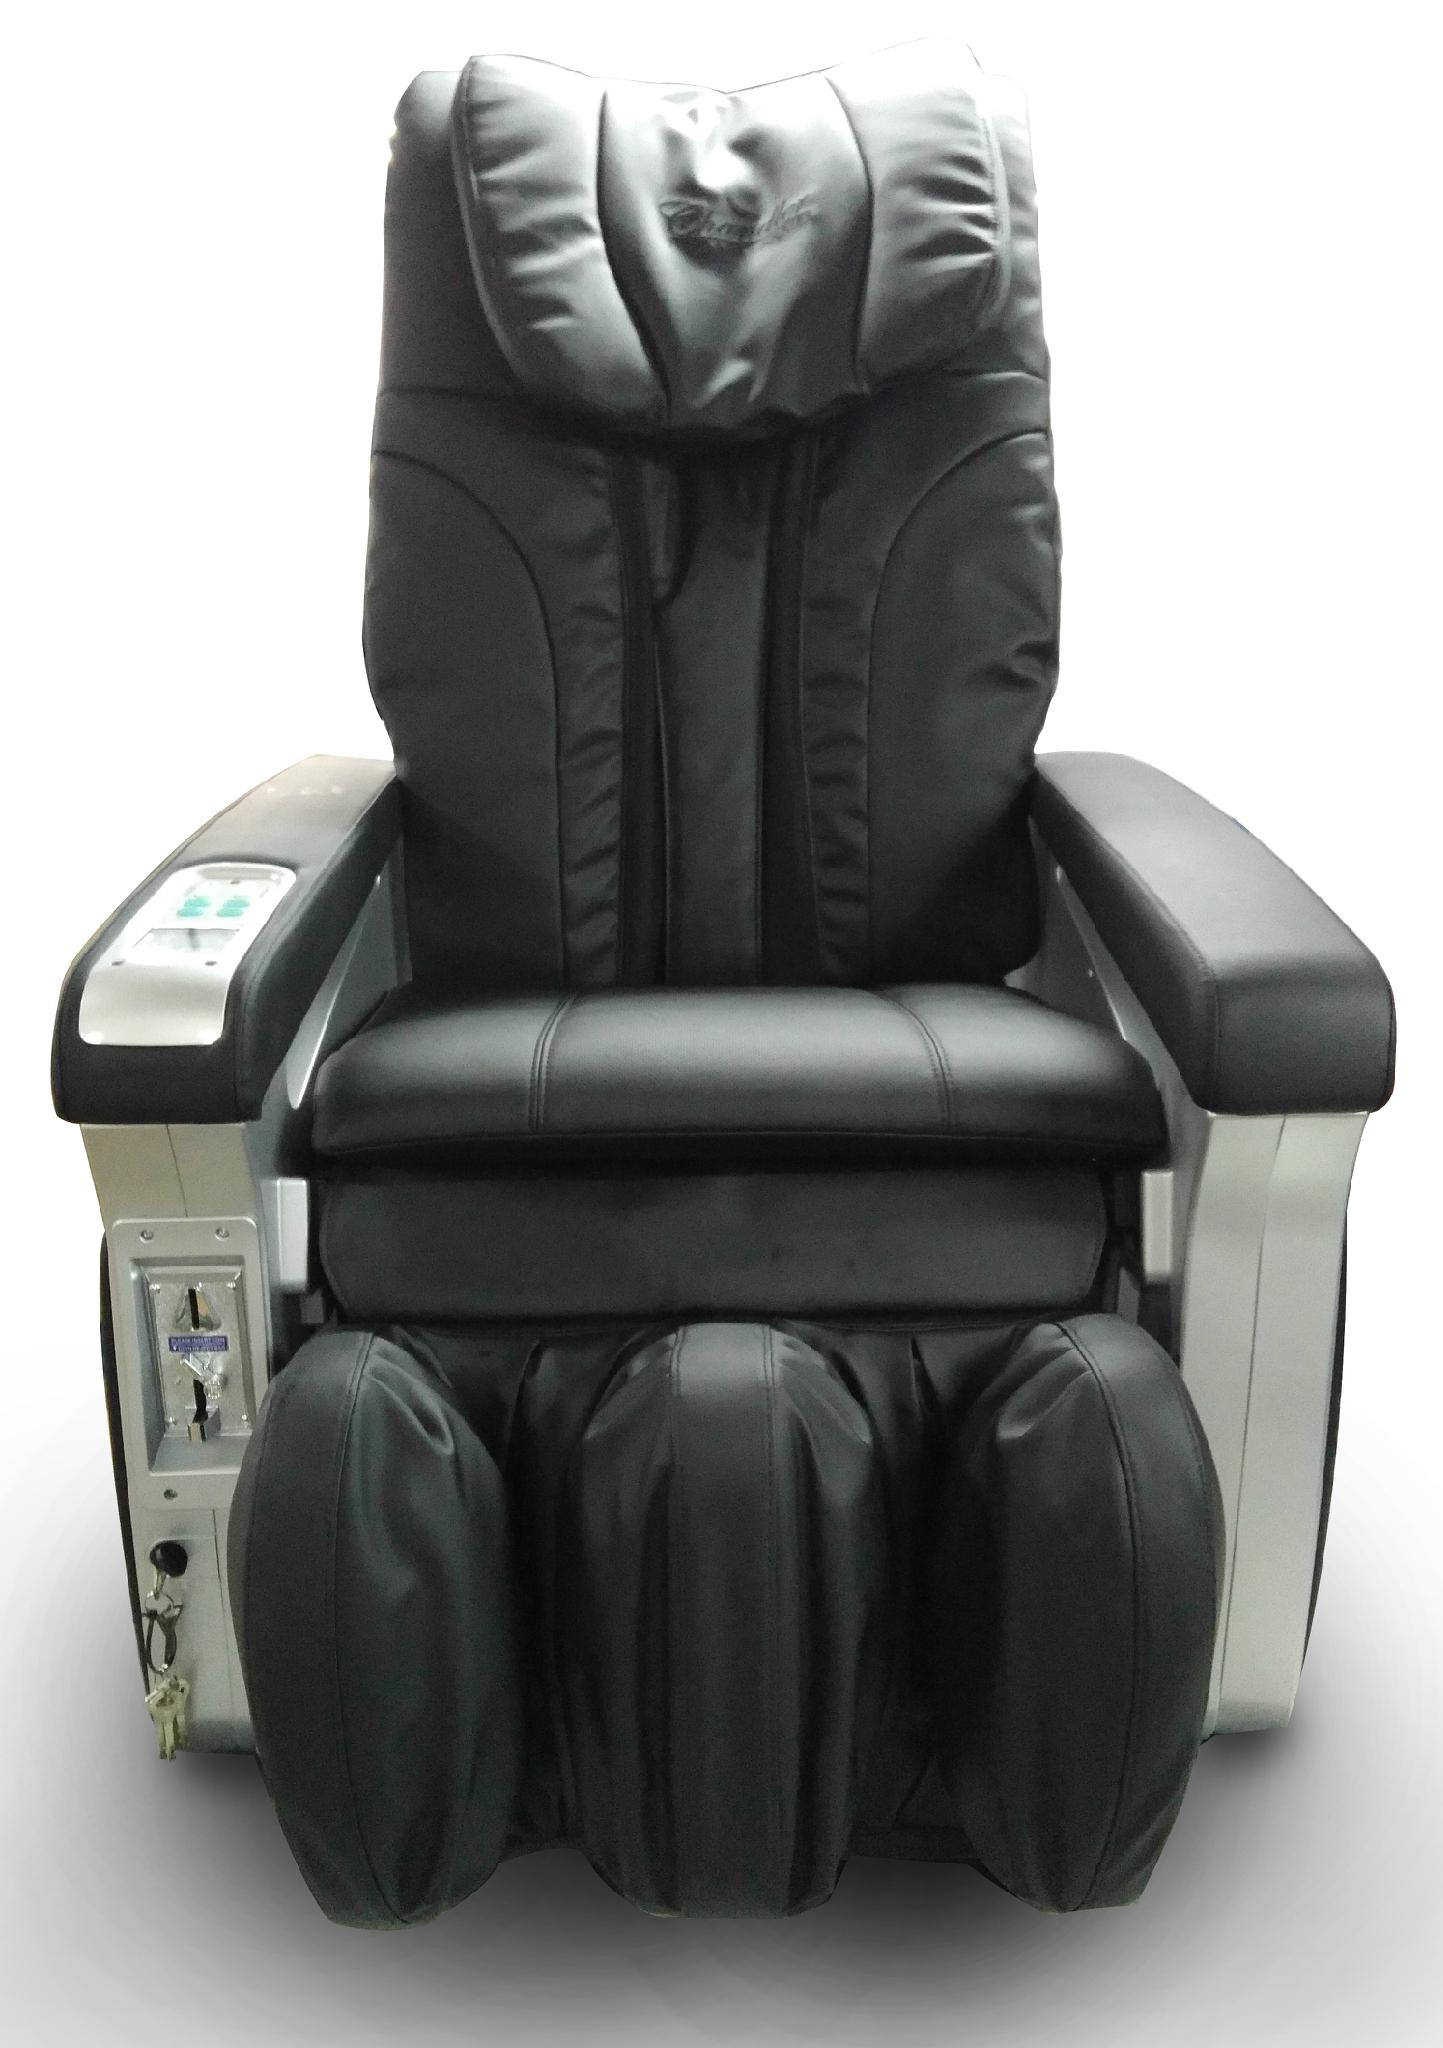 RT-M05 Money operated massage chair With Credit Card System 8